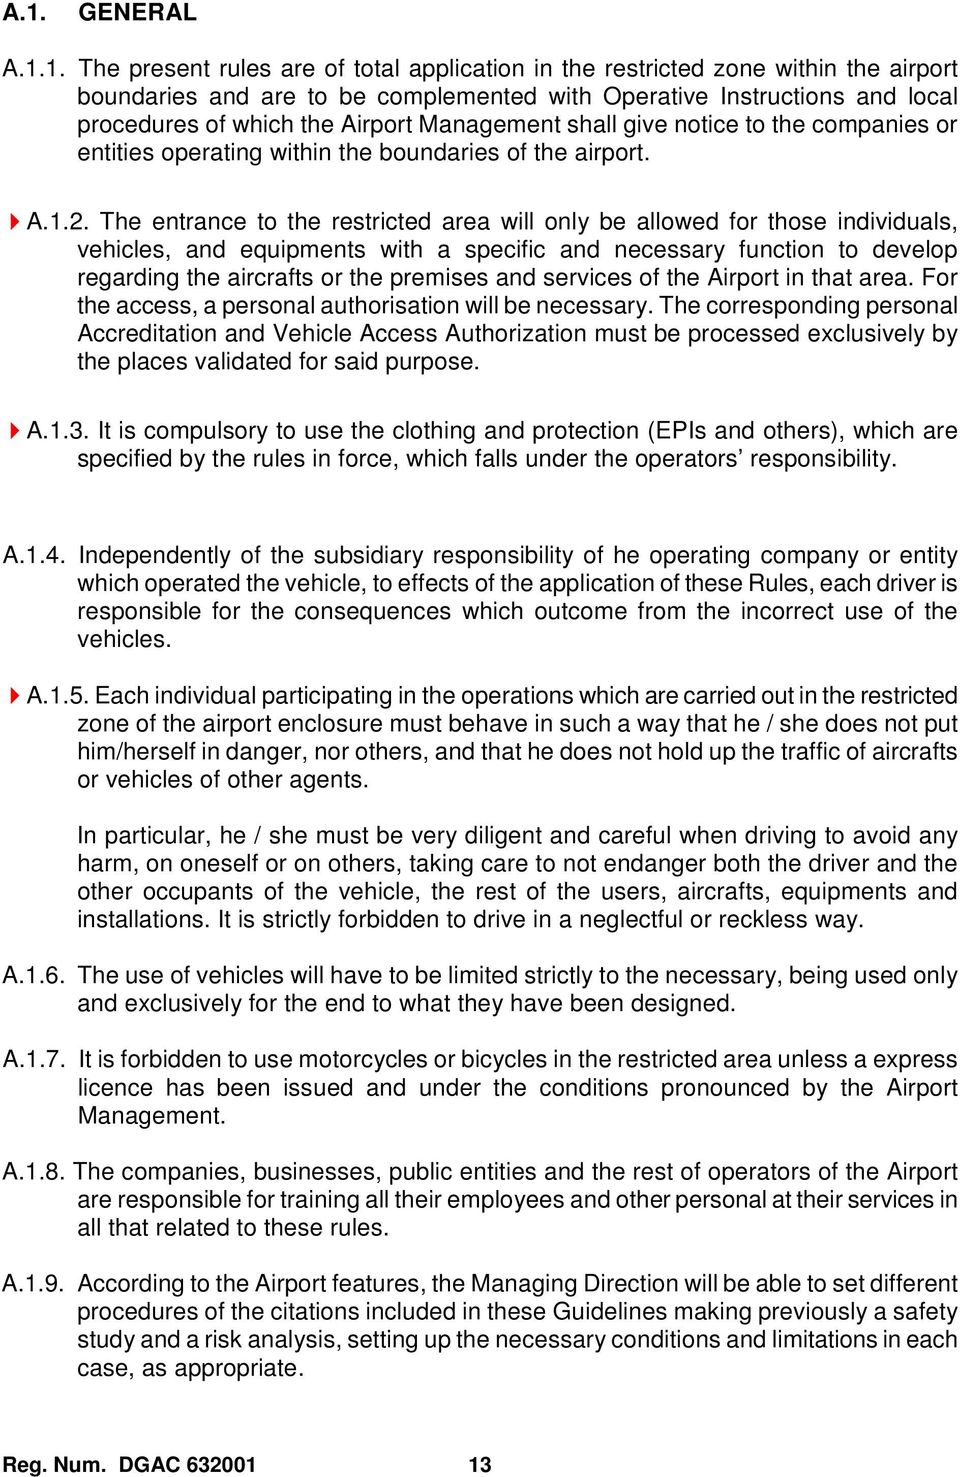 The entrance to the restricted area will only be allowed for those individuals, vehicles, and equipments with a specific and necessary function to develop regarding the aircrafts or the premises and